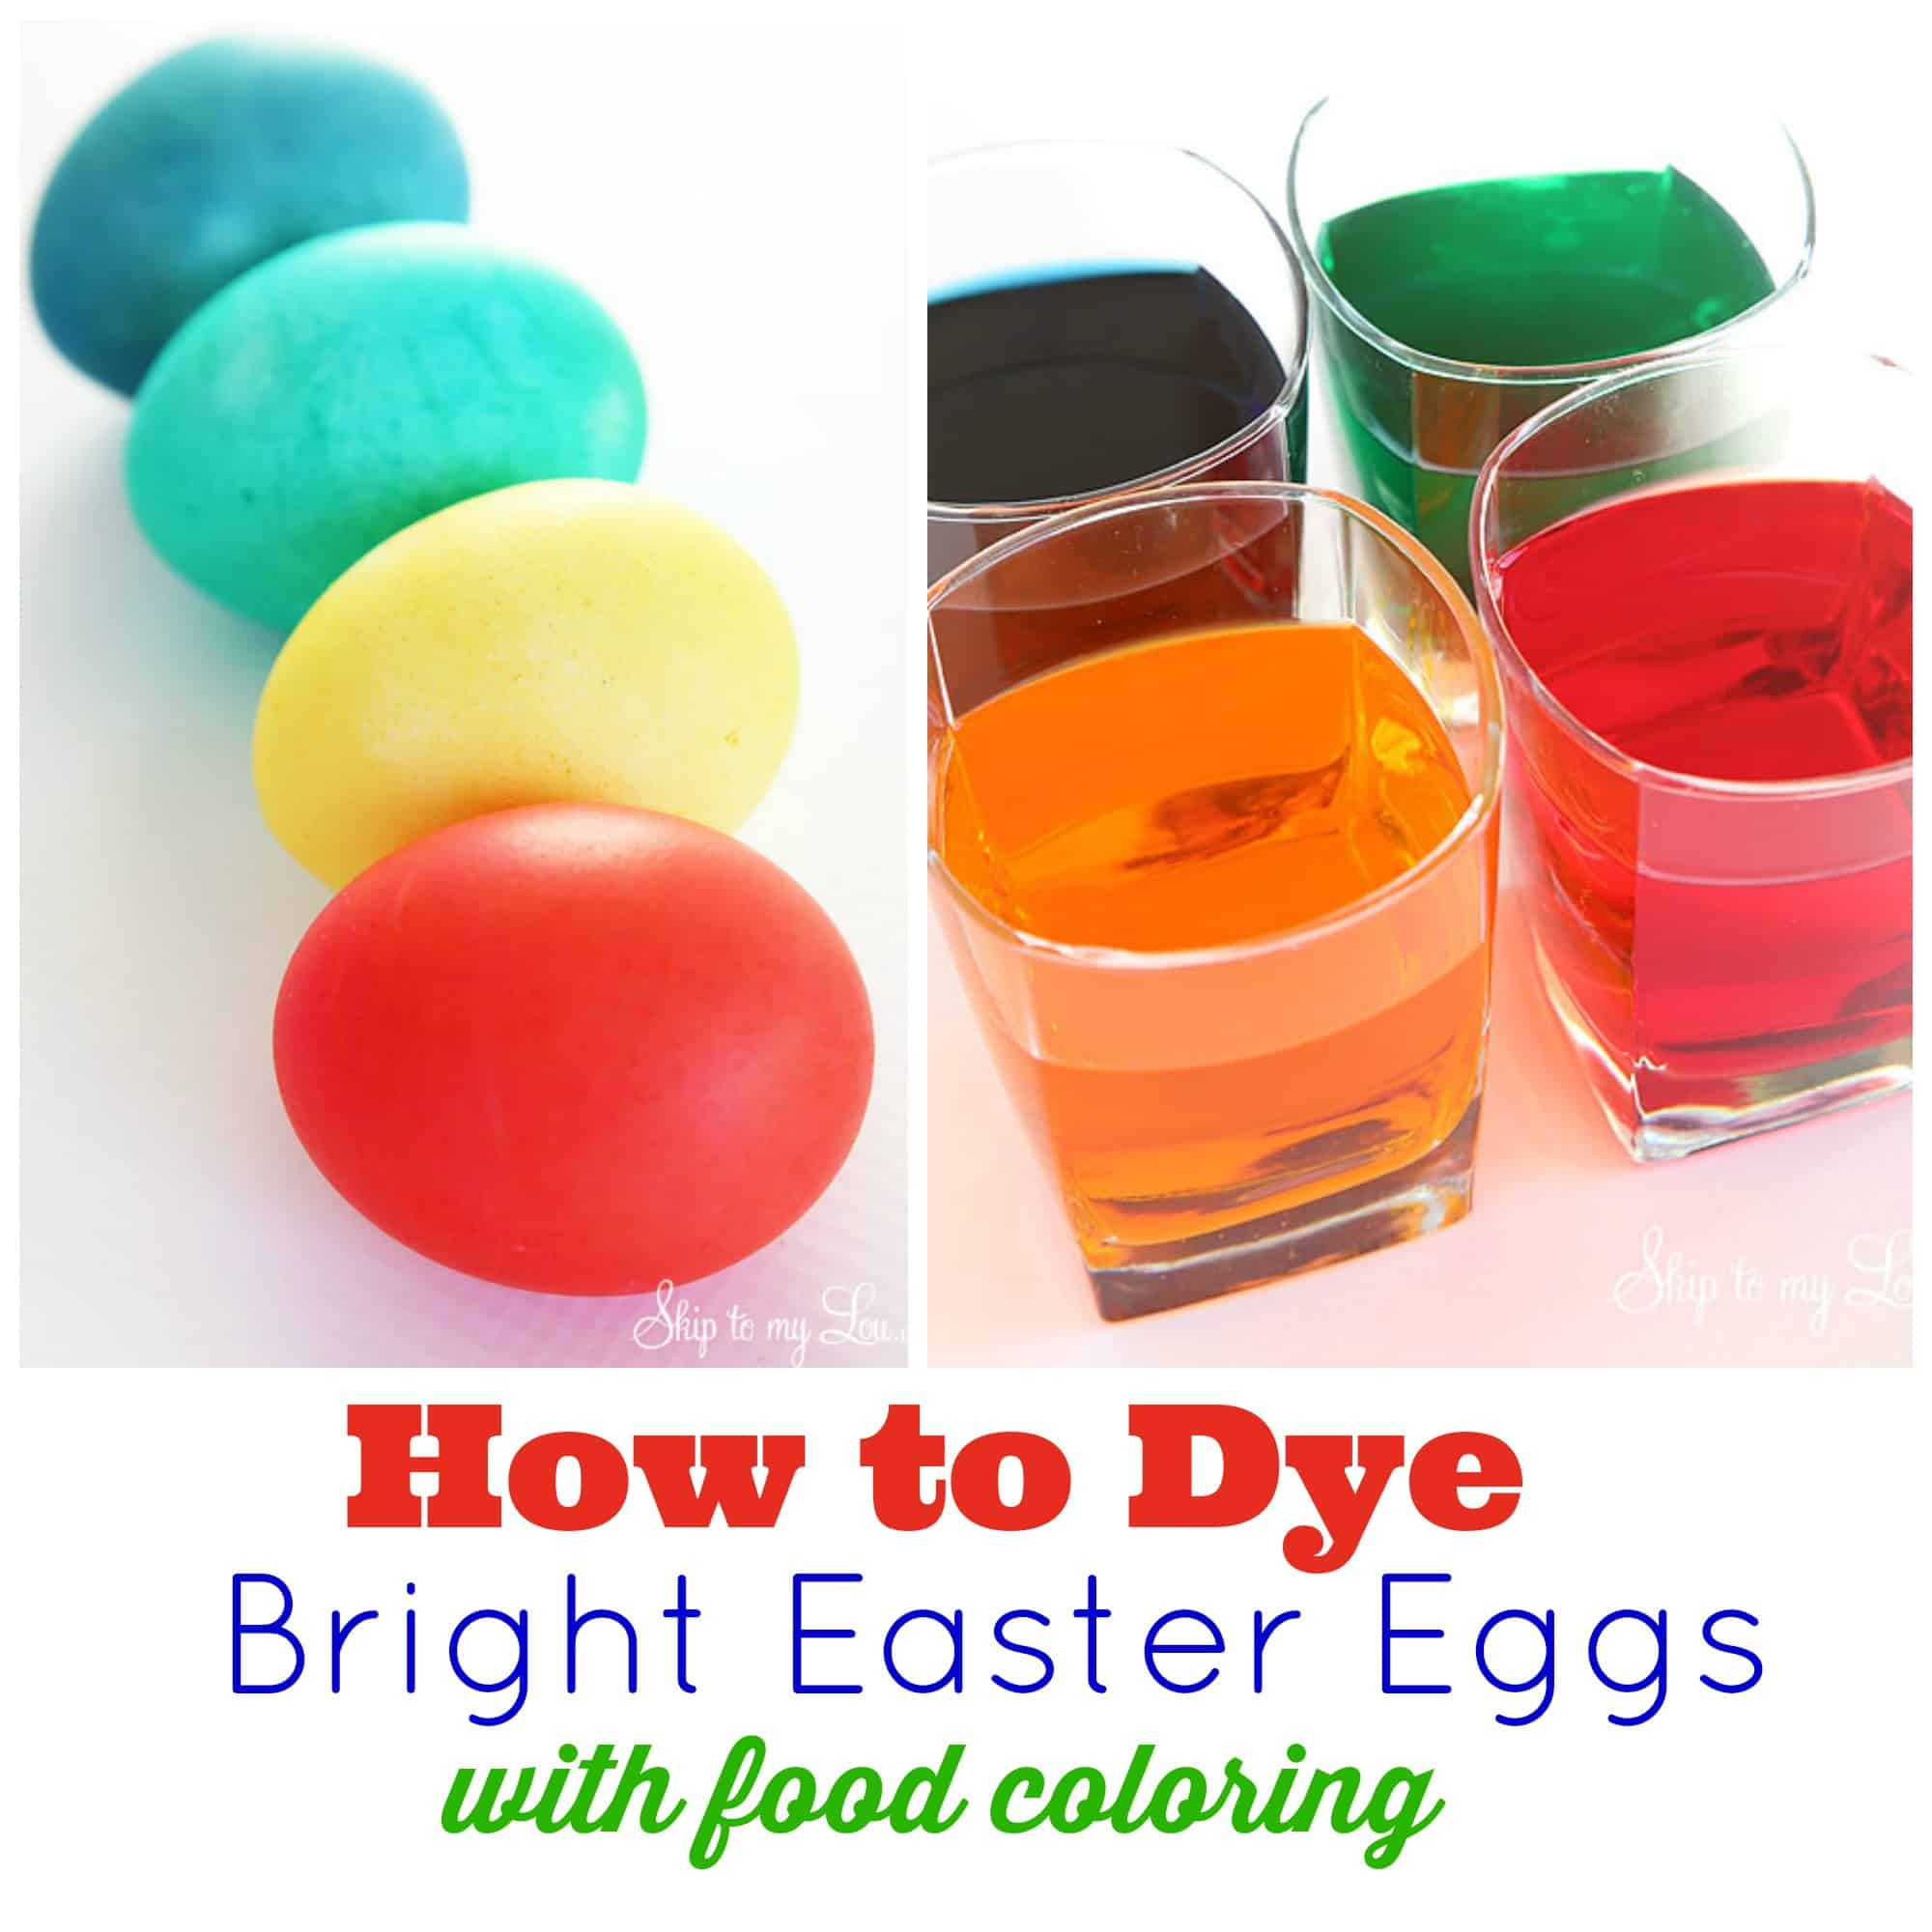 easter-egg-dye-collage-skip.jpg